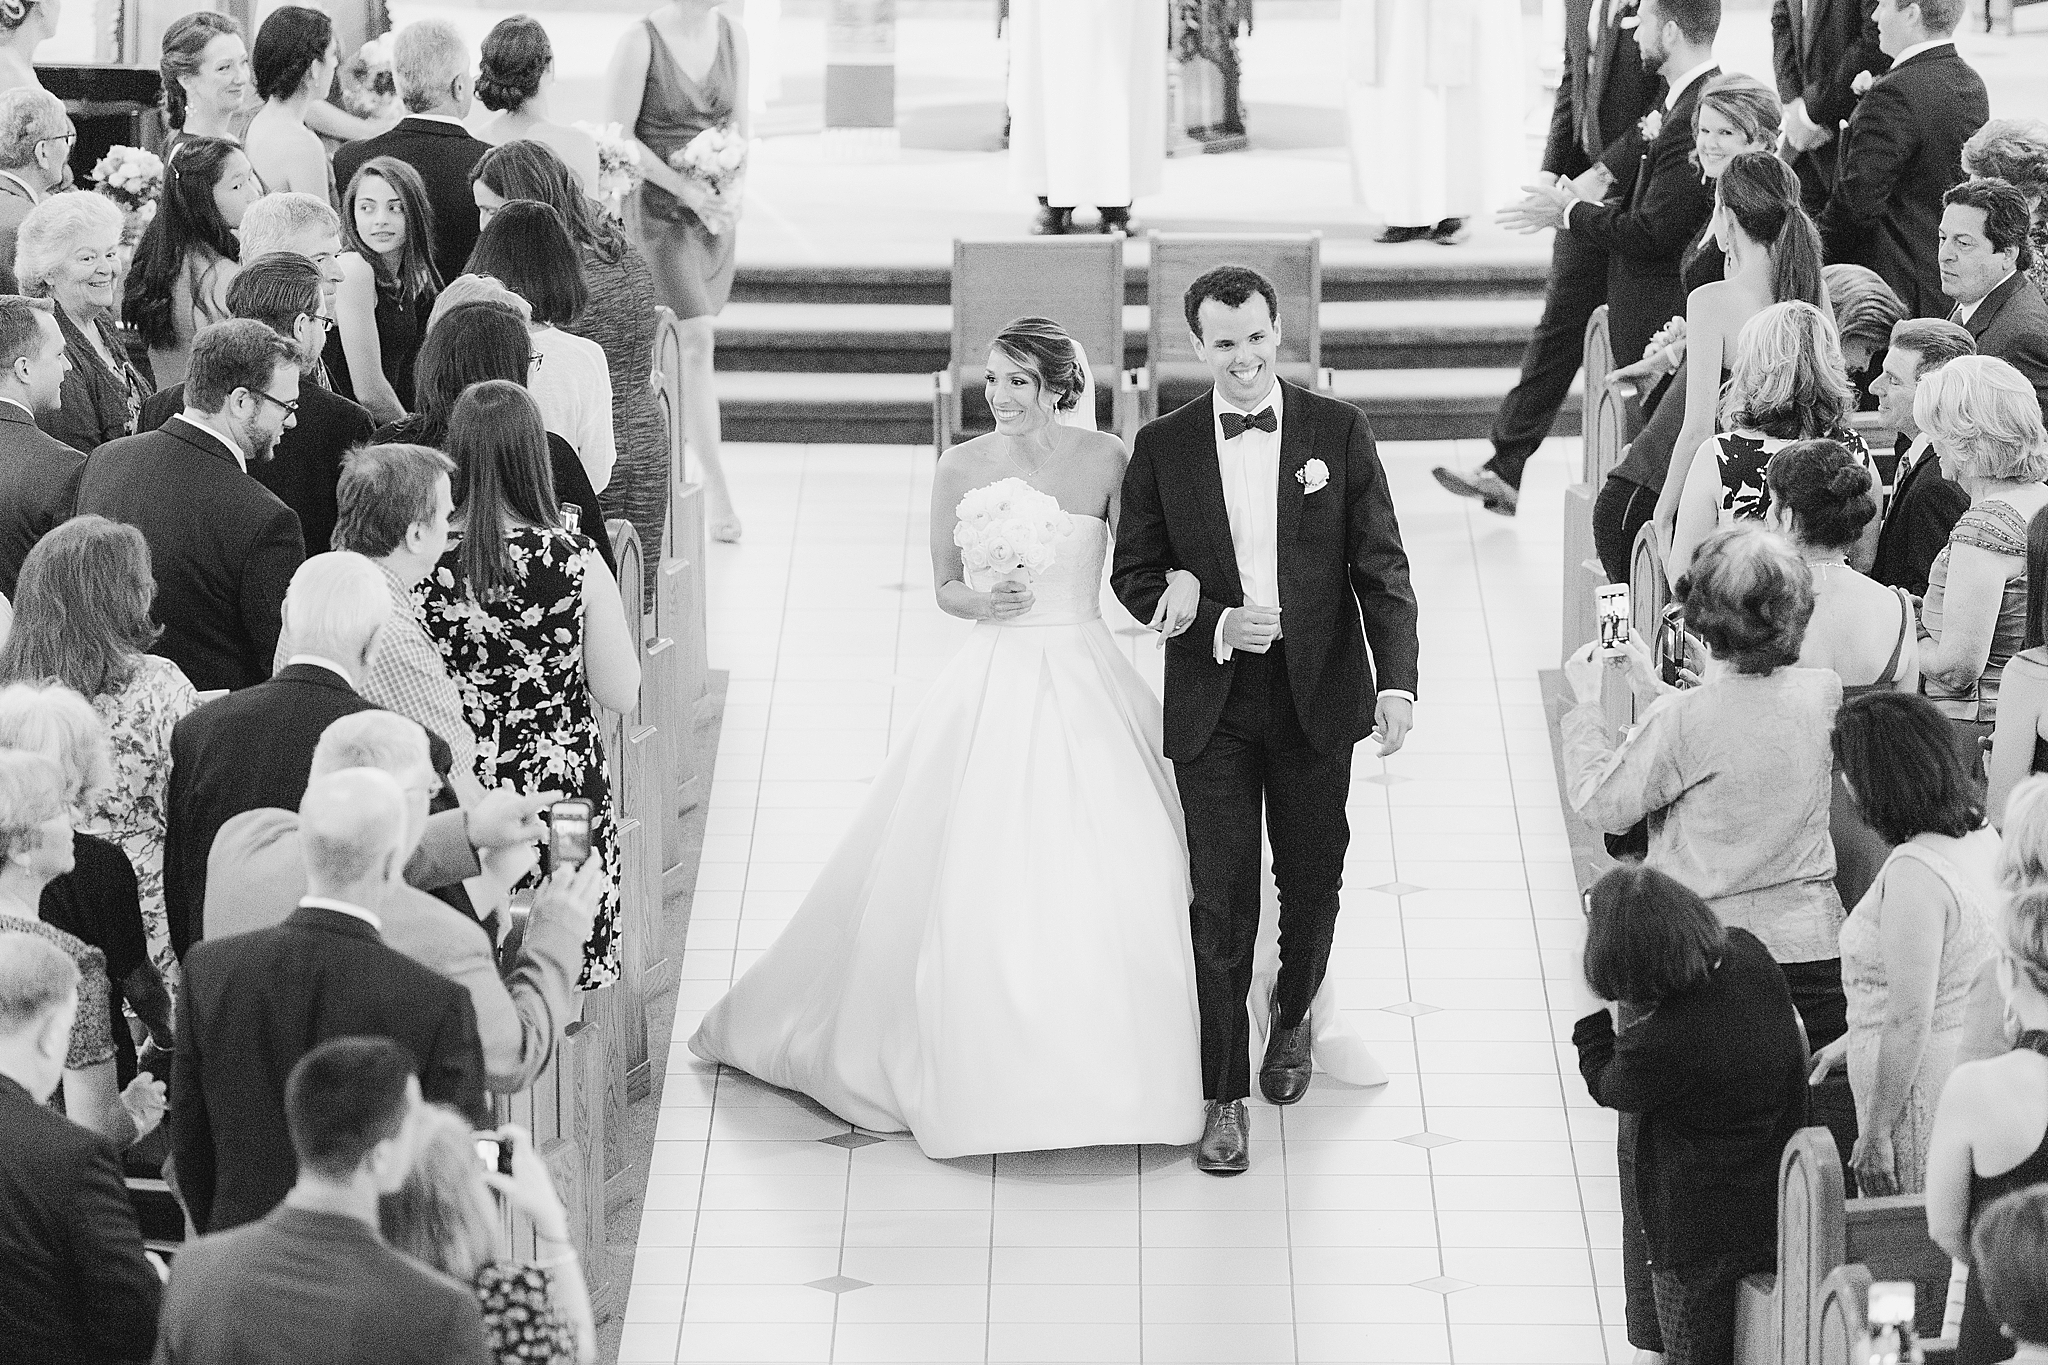 Church ceremony exit as couple walks down the aisle as Mr. and Mrs. in New Jersey